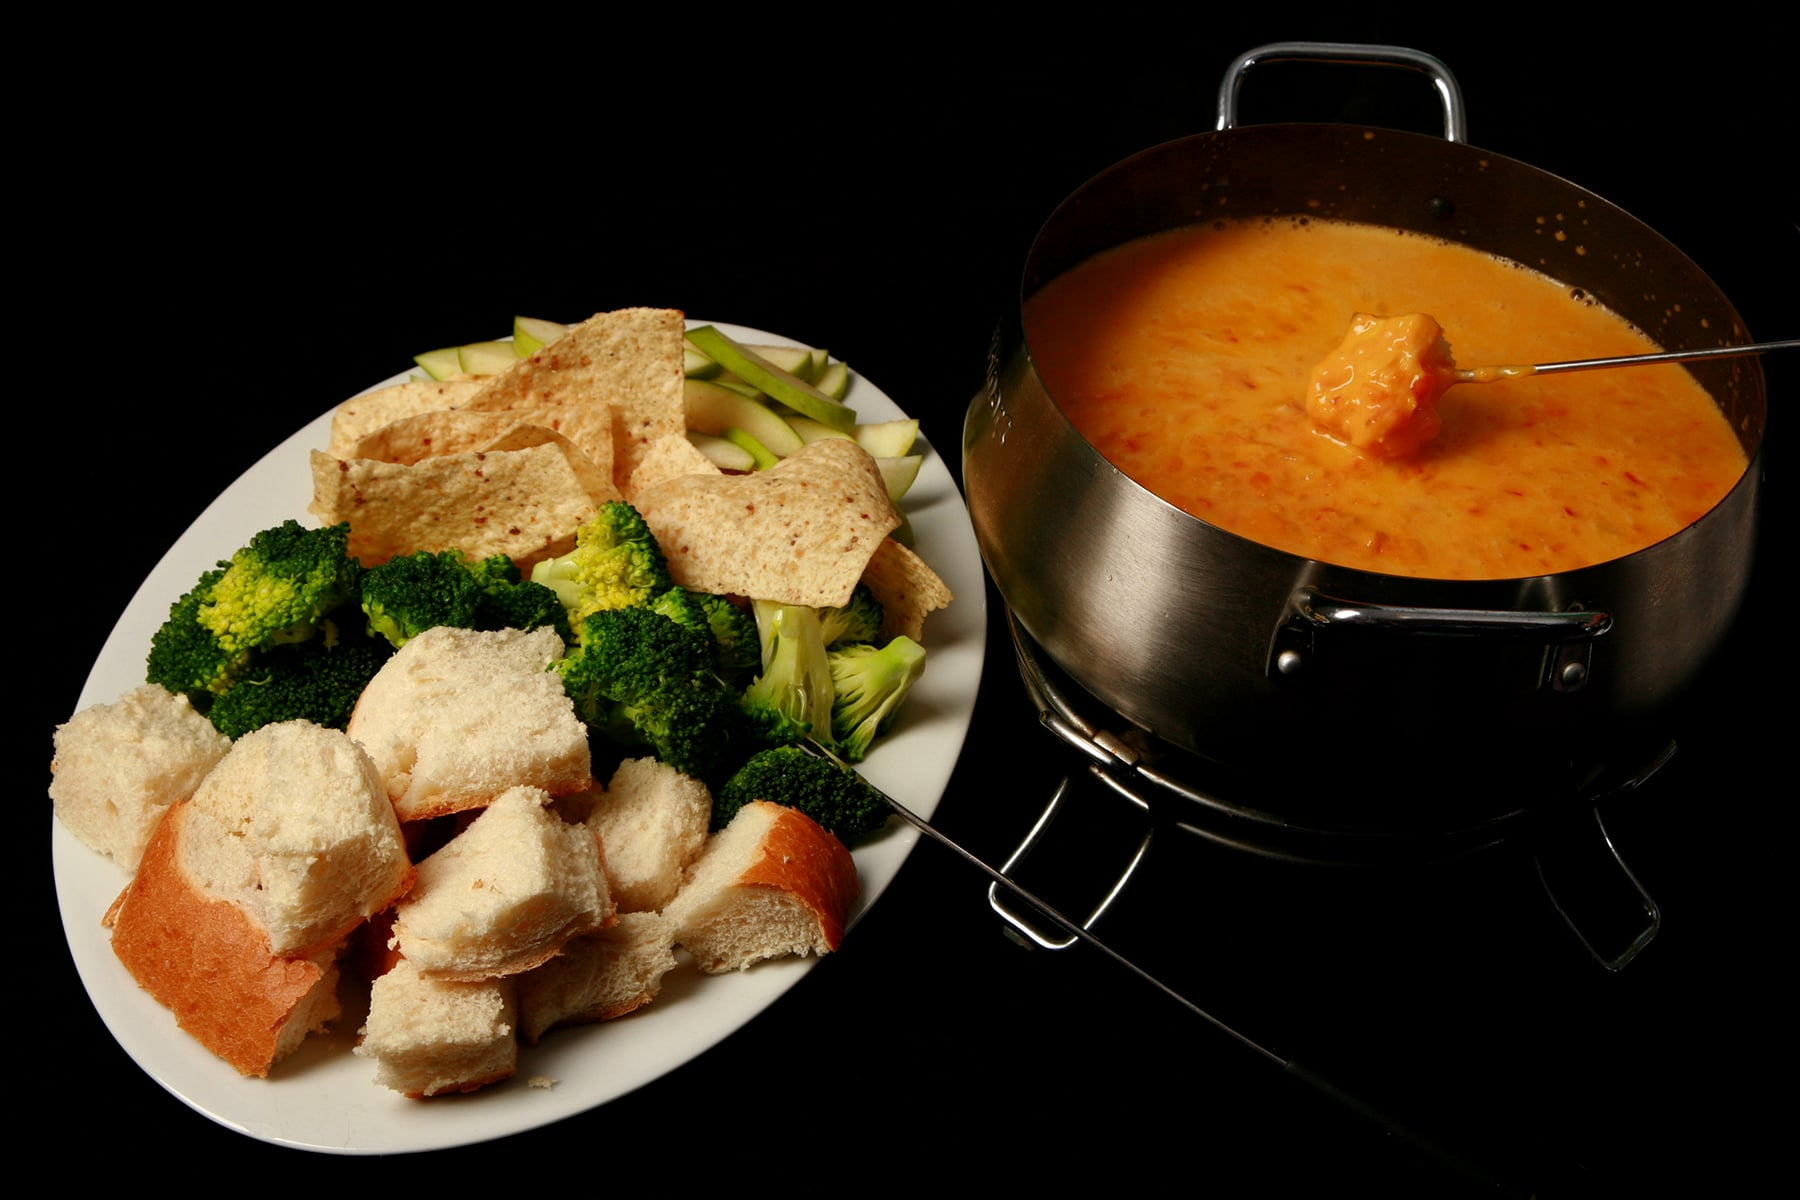 A large platter of bread cubes, broccoli, torilla chips, and apple slices. It's next to a metal fondue pot full of southwest fondue.